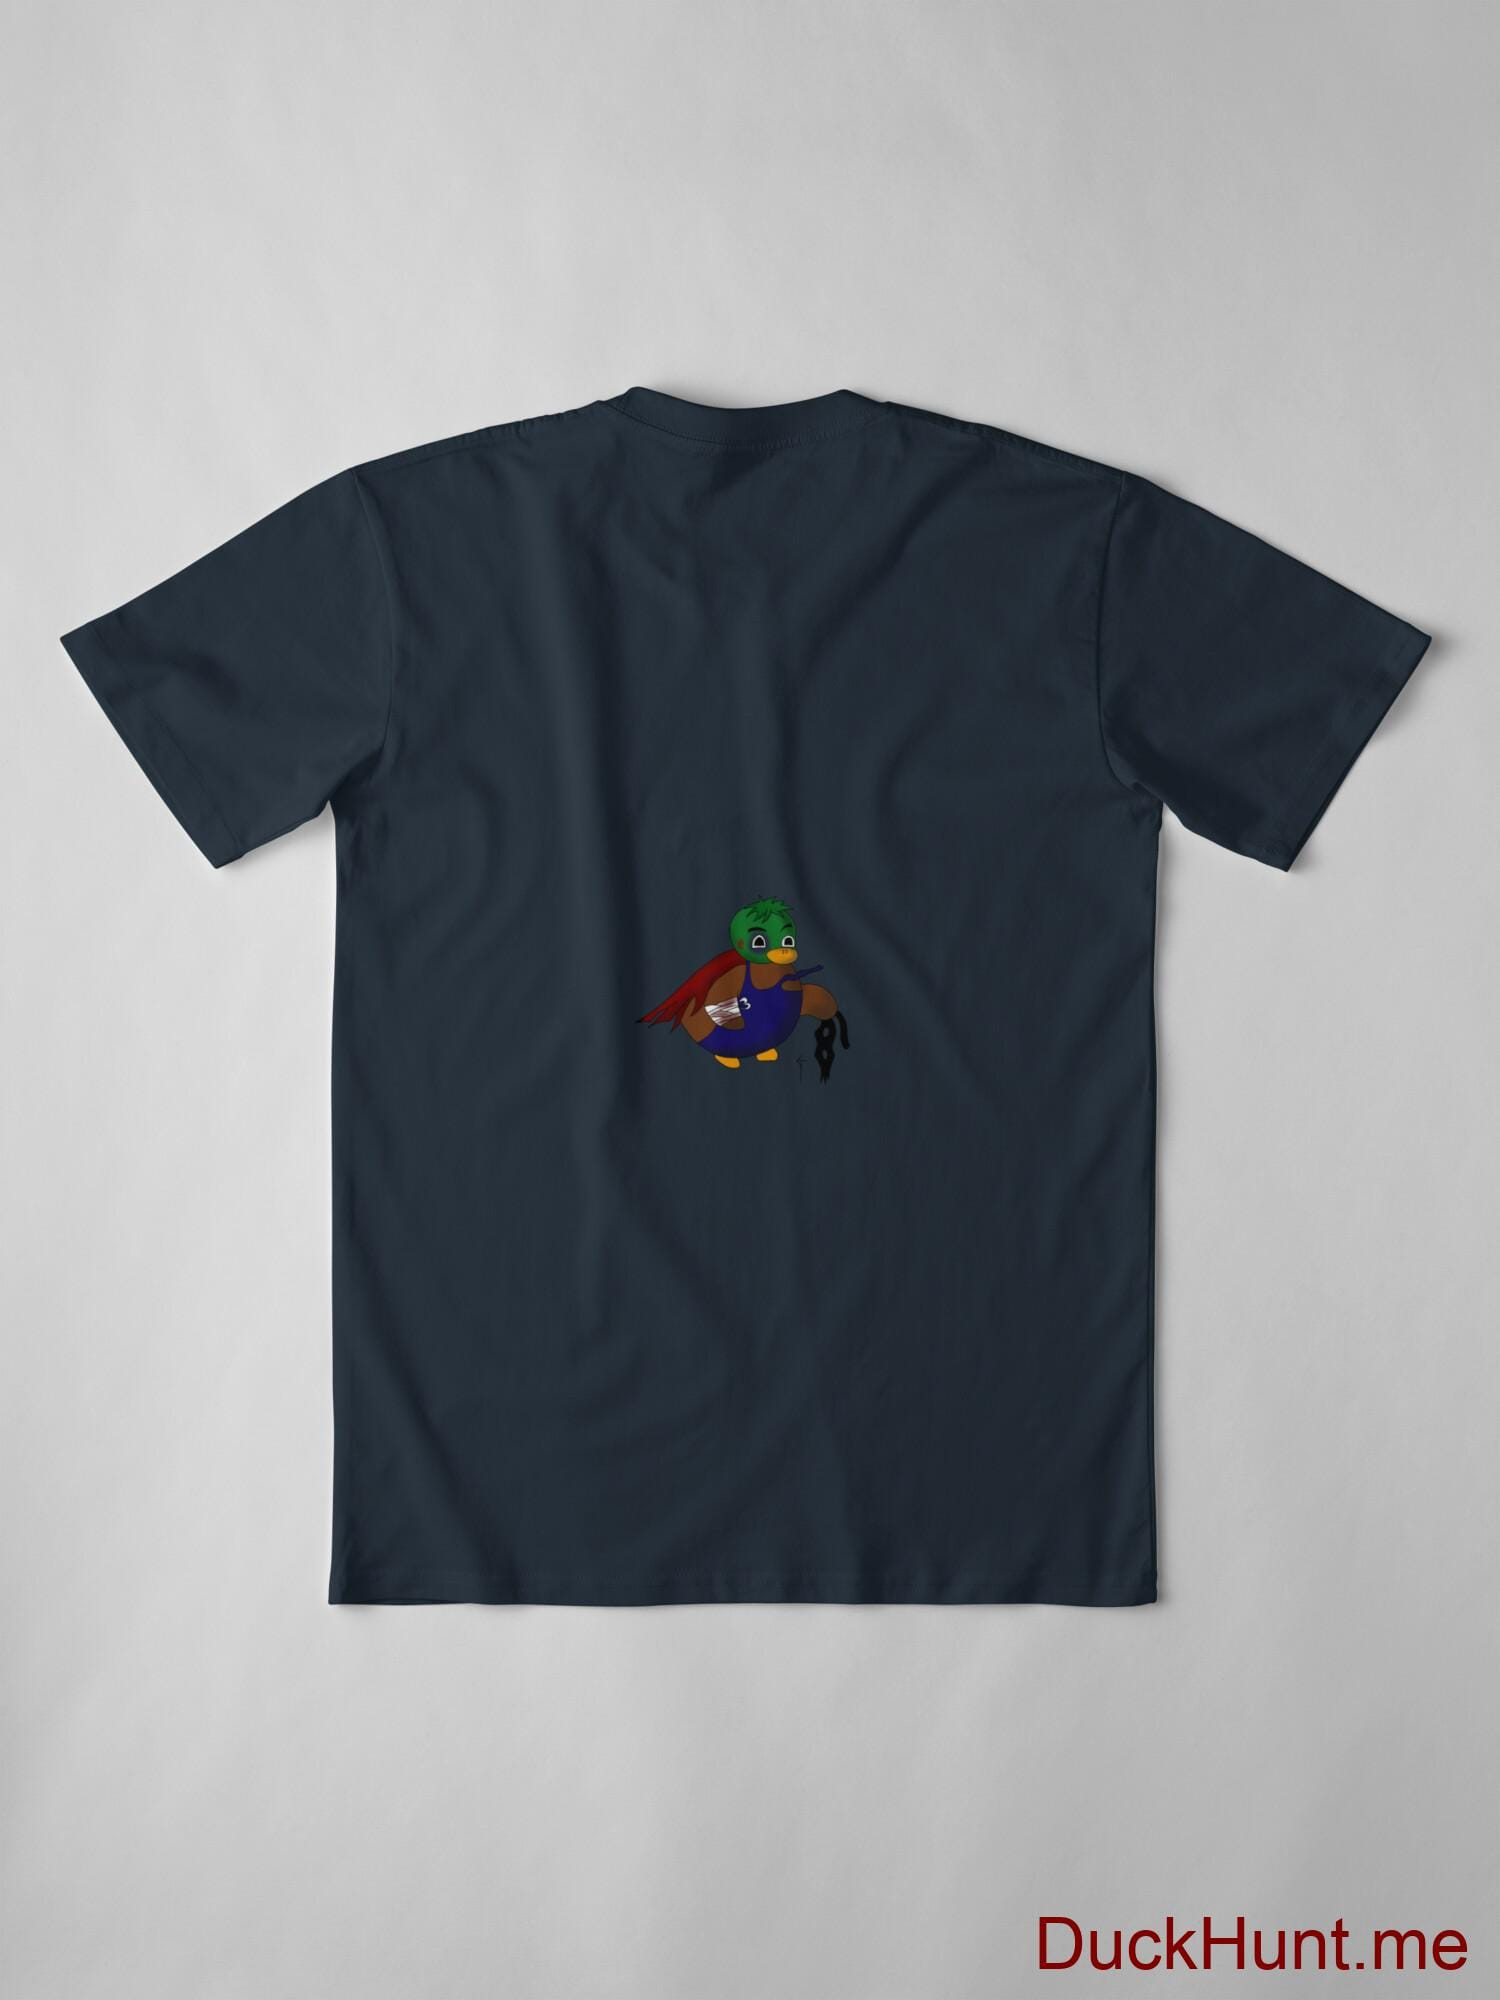 Dead DuckHunt Boss (smokeless) Navy Premium T-Shirt (Back printed) alternative image 2